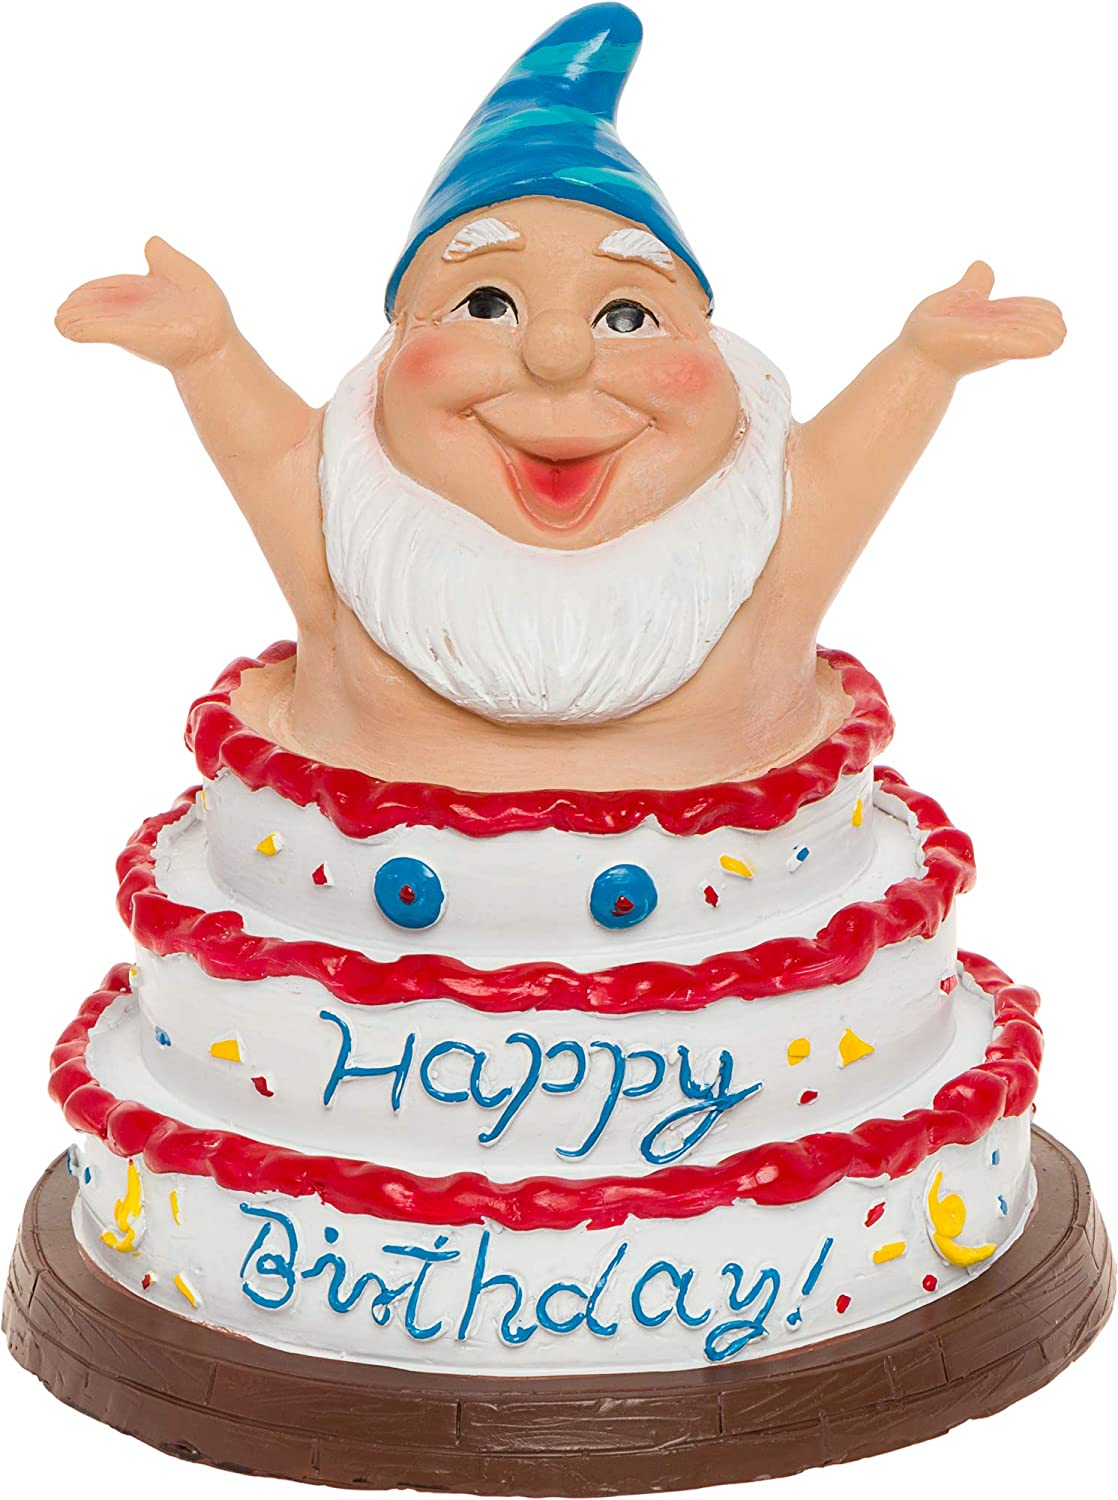 GreenLighting Happy Birthday Garden Gnome Outdoor Figurine - Hand Painted Funny Novelty Lawn Statue Decoration for Front Yards, Flowerbeds and Offices